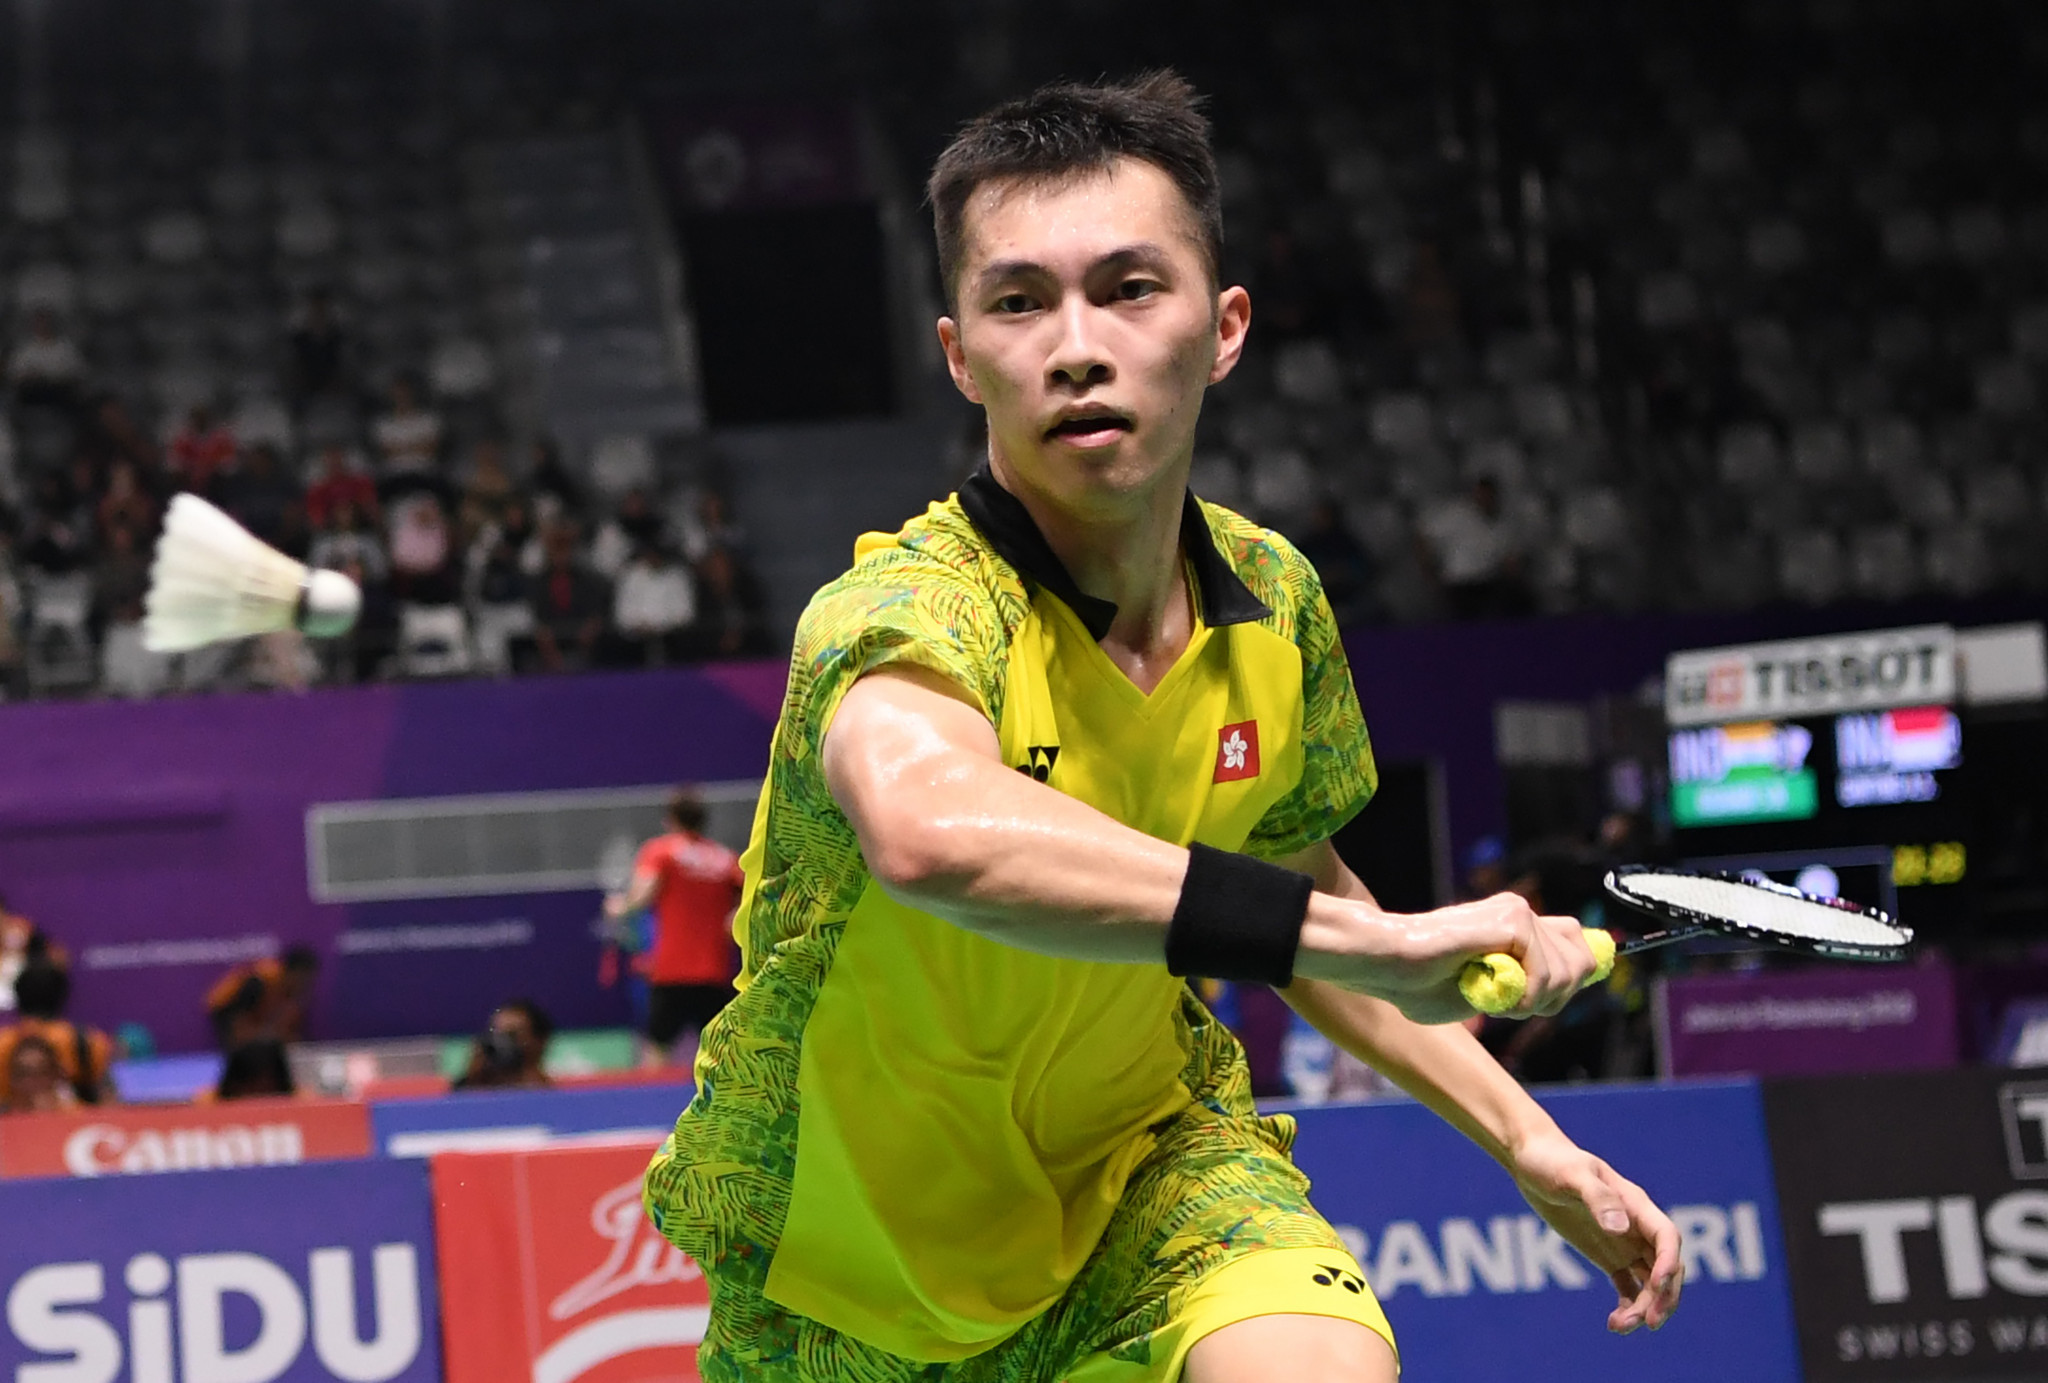 Hong Kong's Ng Ka Long, top seed at the BWF Macau Open, was beaten in his quarter-final by an unseeded Chinese player ©Getty Images